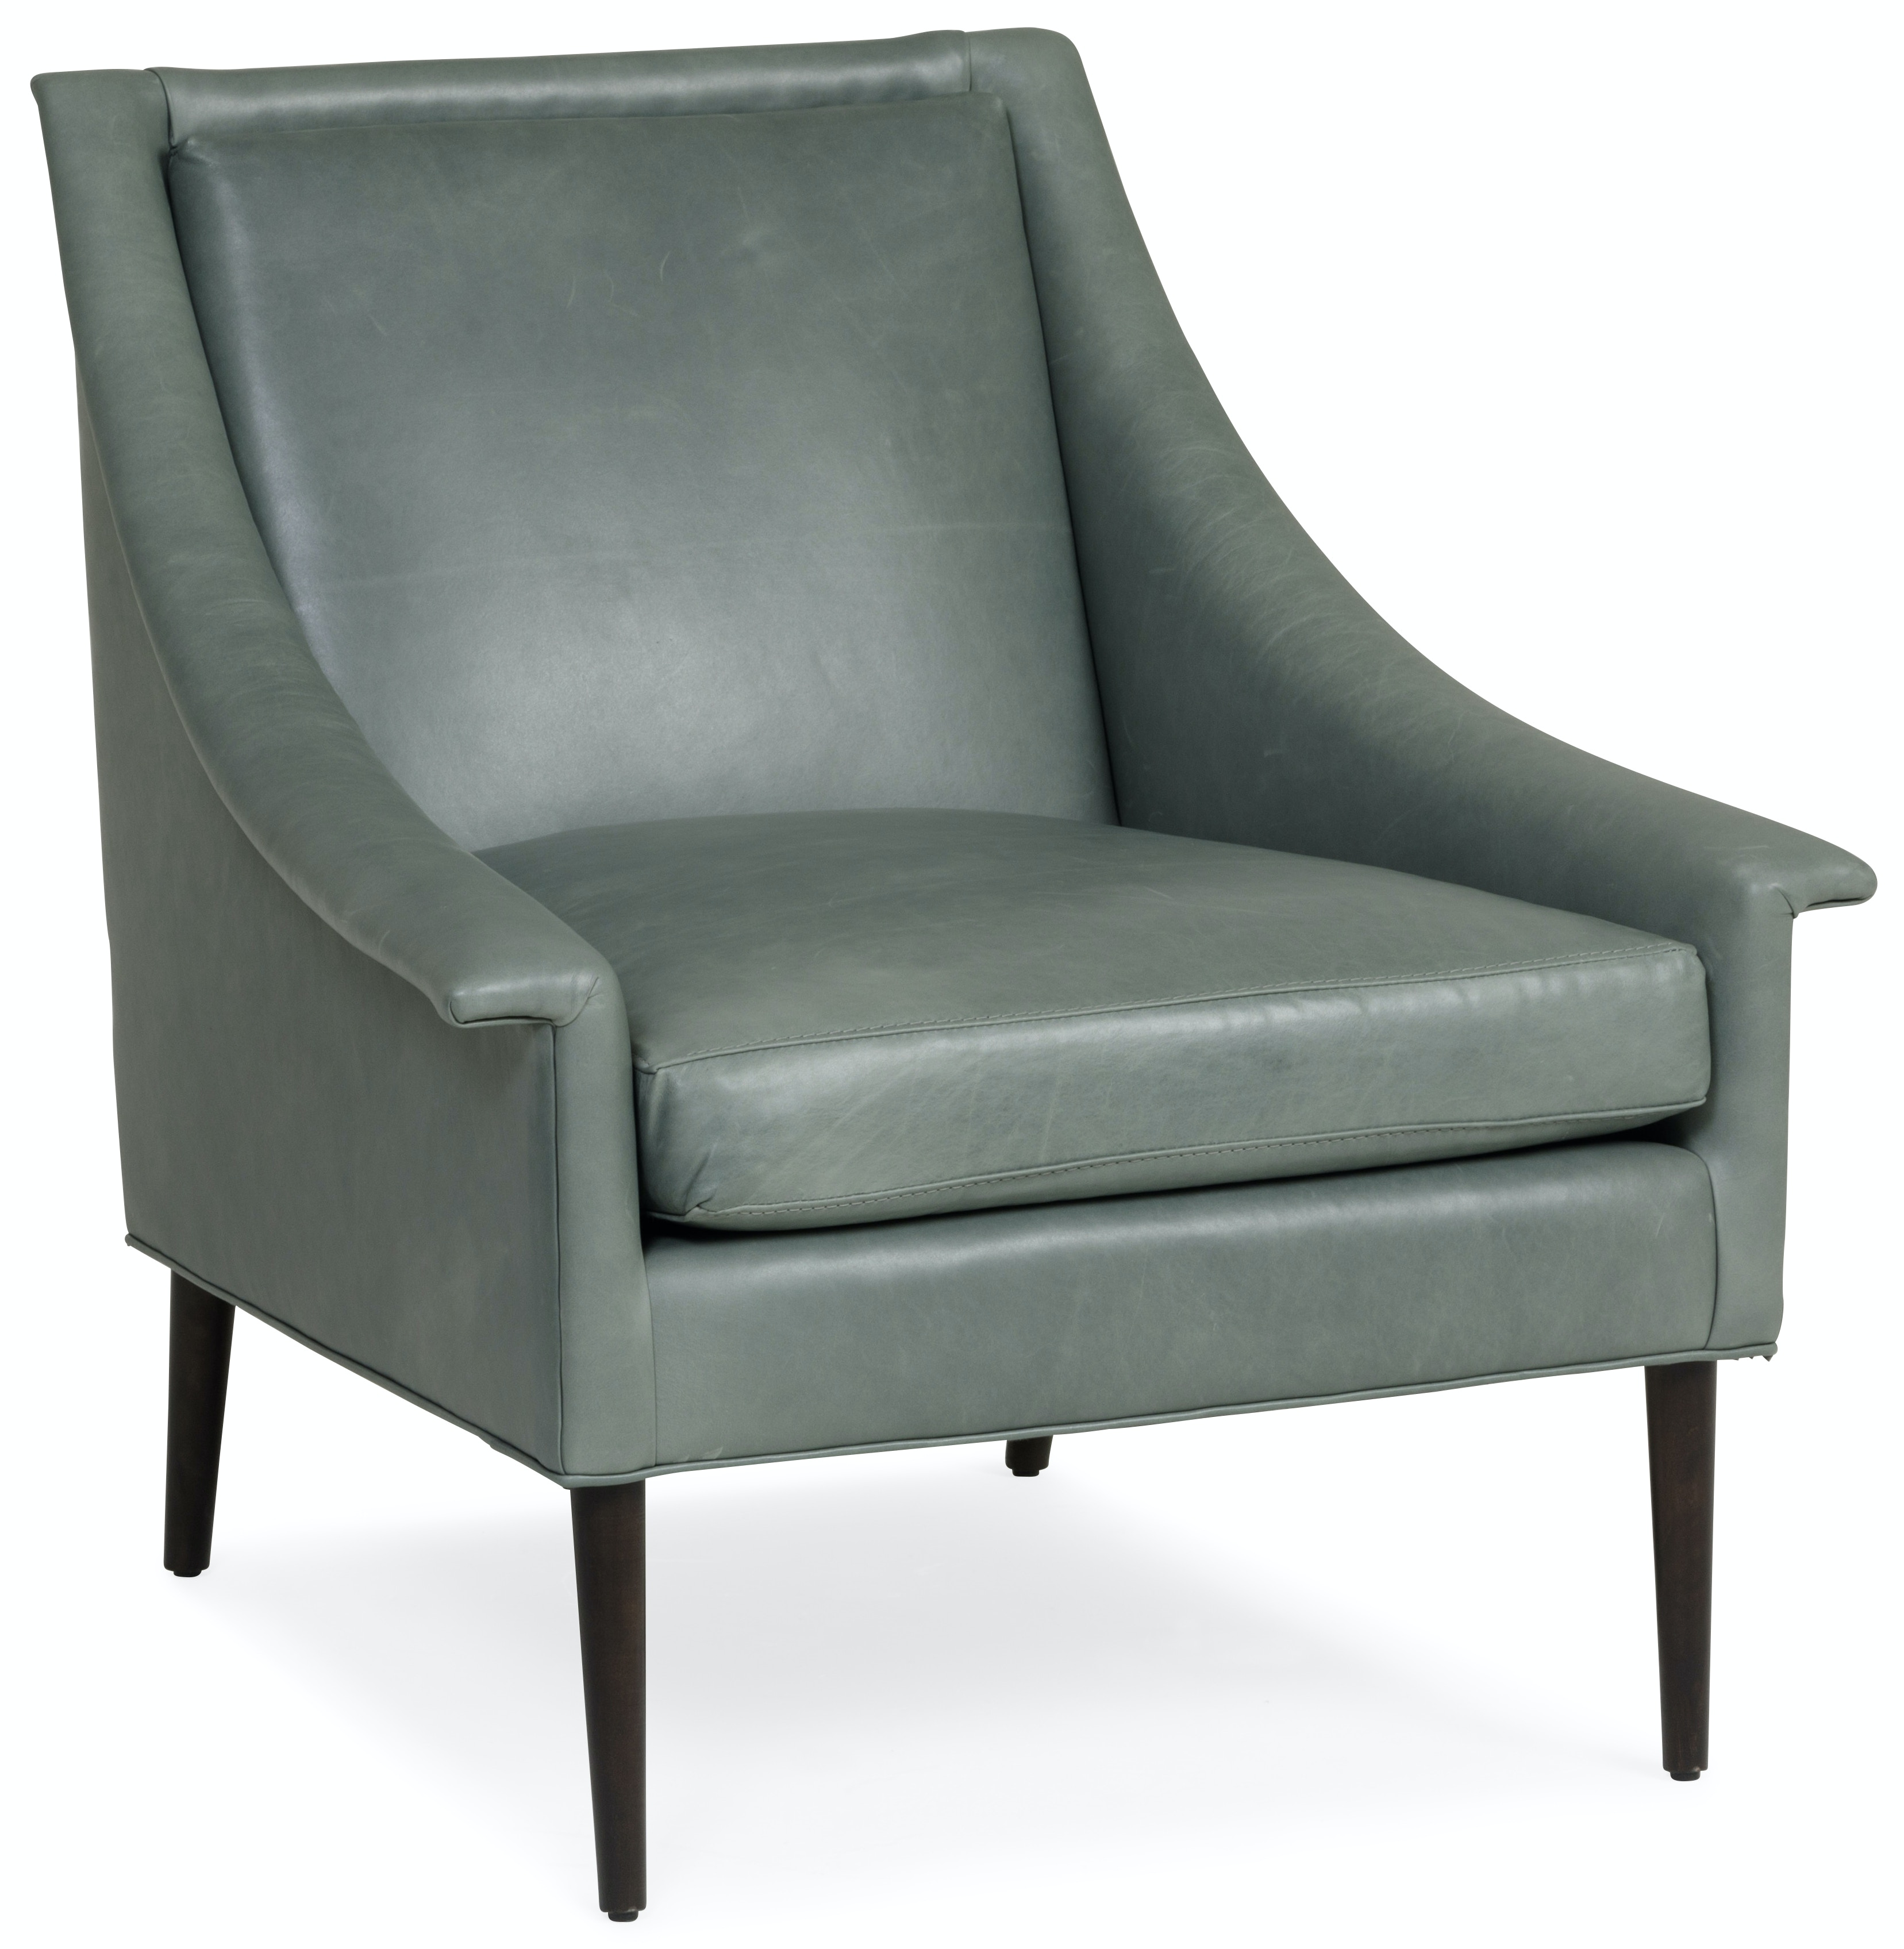 accent living room chairs with arms hanging without stand grace leather chair st 514613